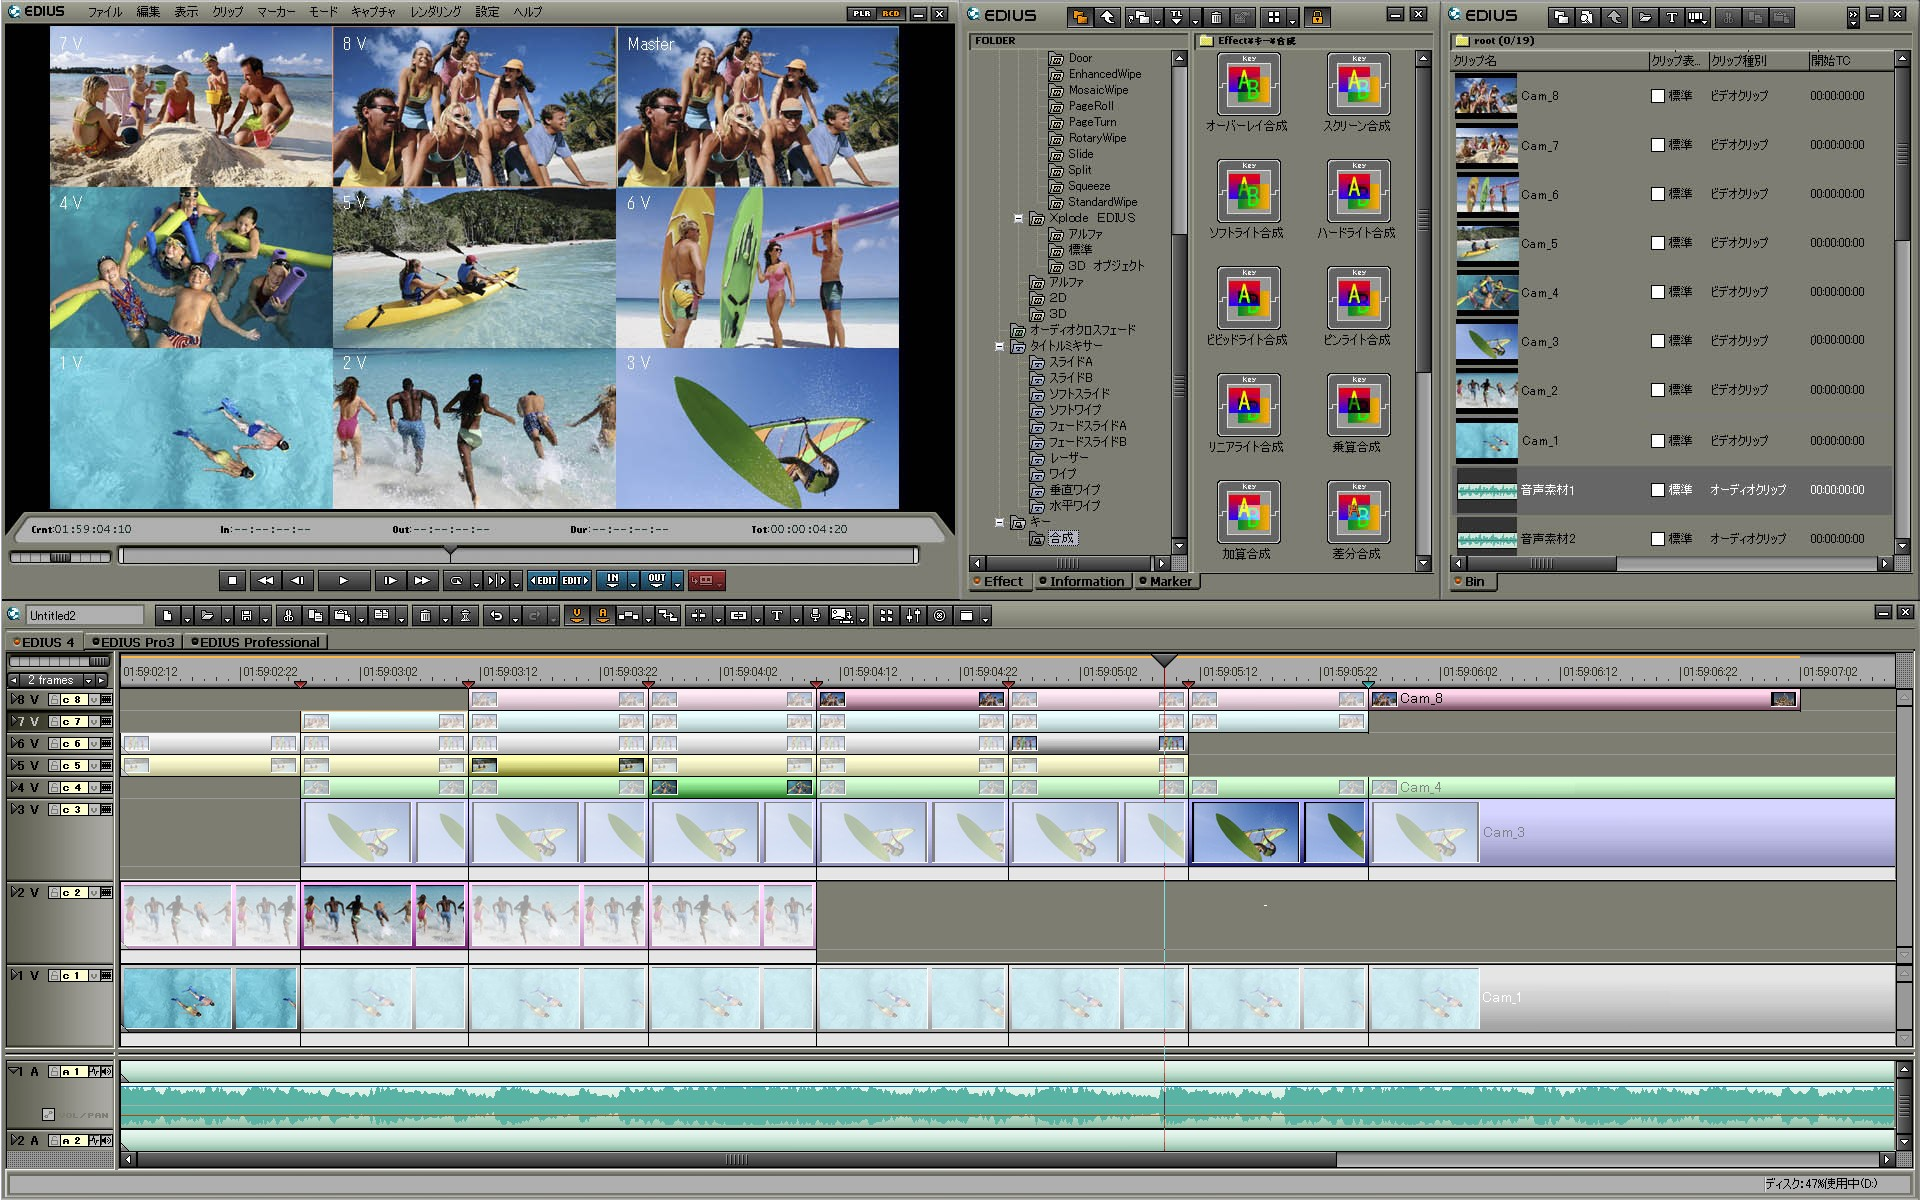 Getting smooth roll with Title Motion Pro in EDIUS